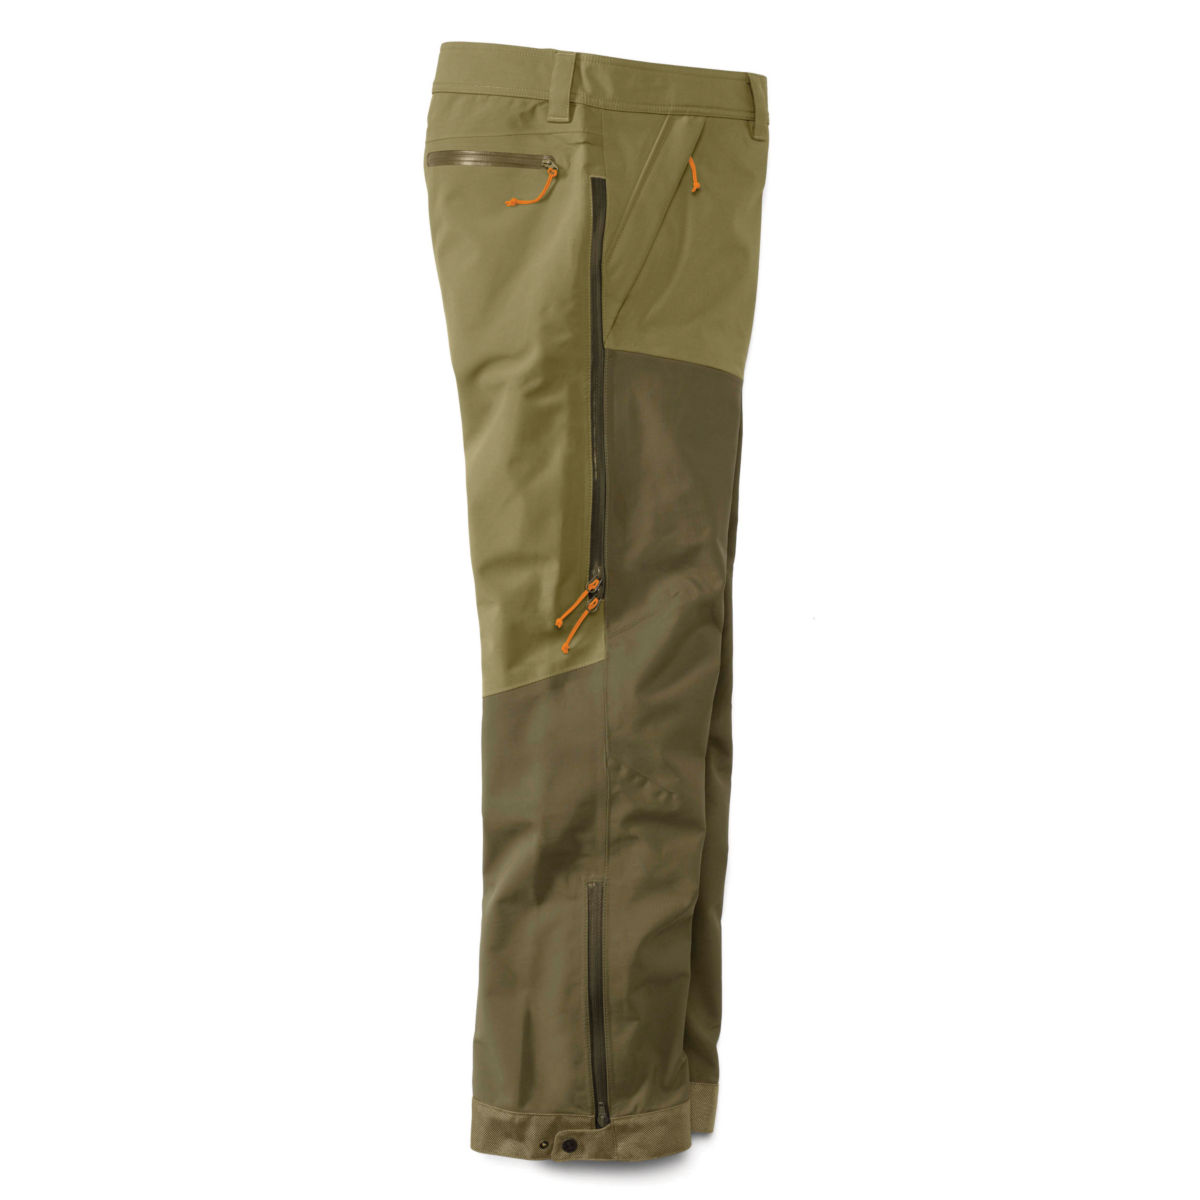 ToughShell Waterproof Upland Pants - OLIVEimage number 0